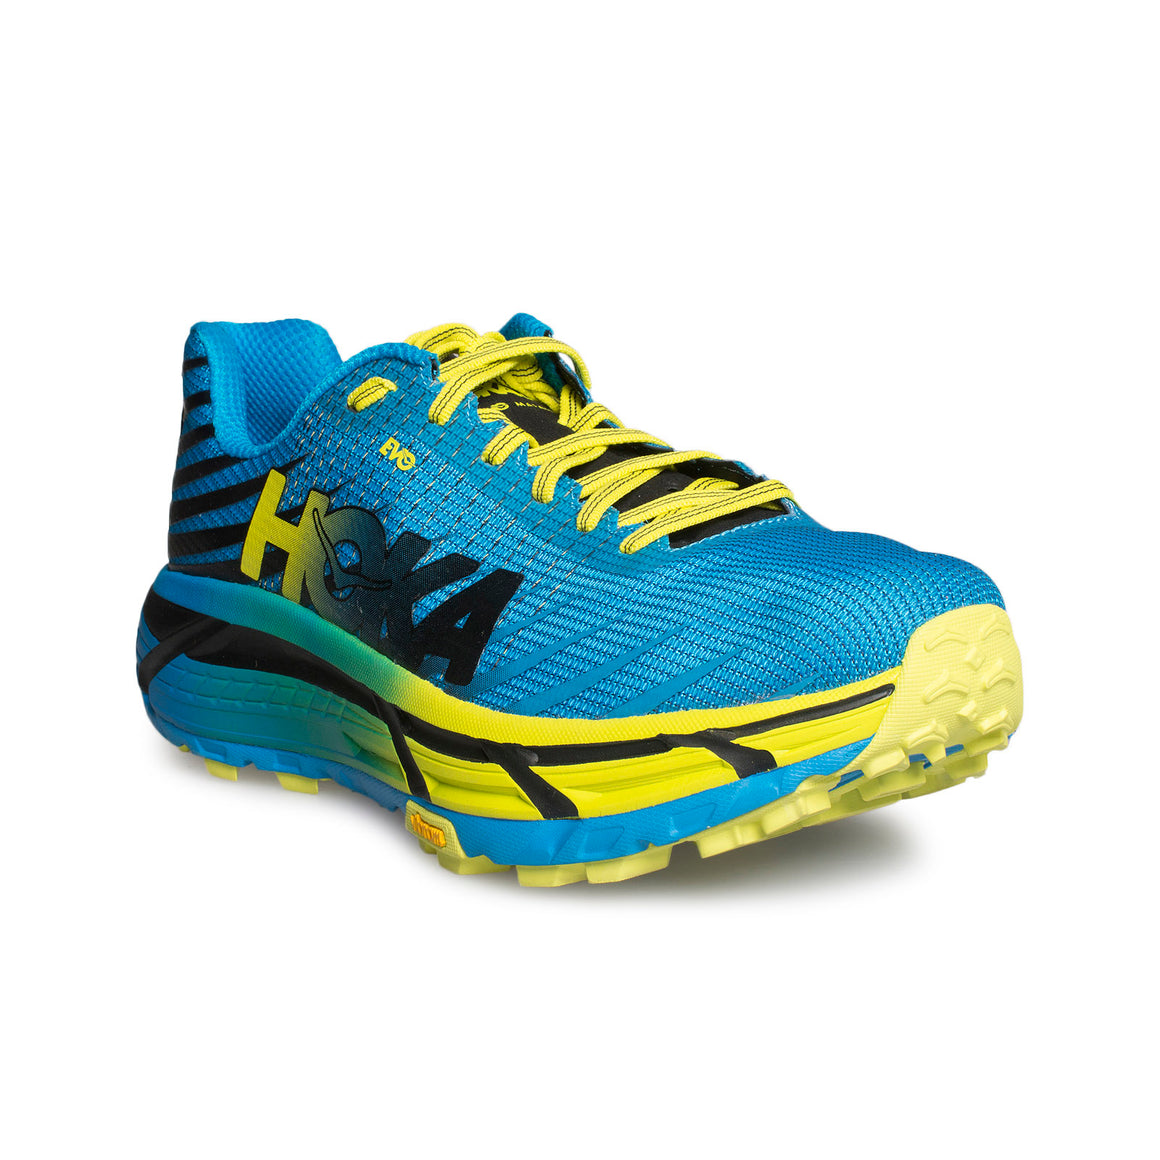 HOKA Evo Mafate Cyan / Citrus Running Shoes - Men's